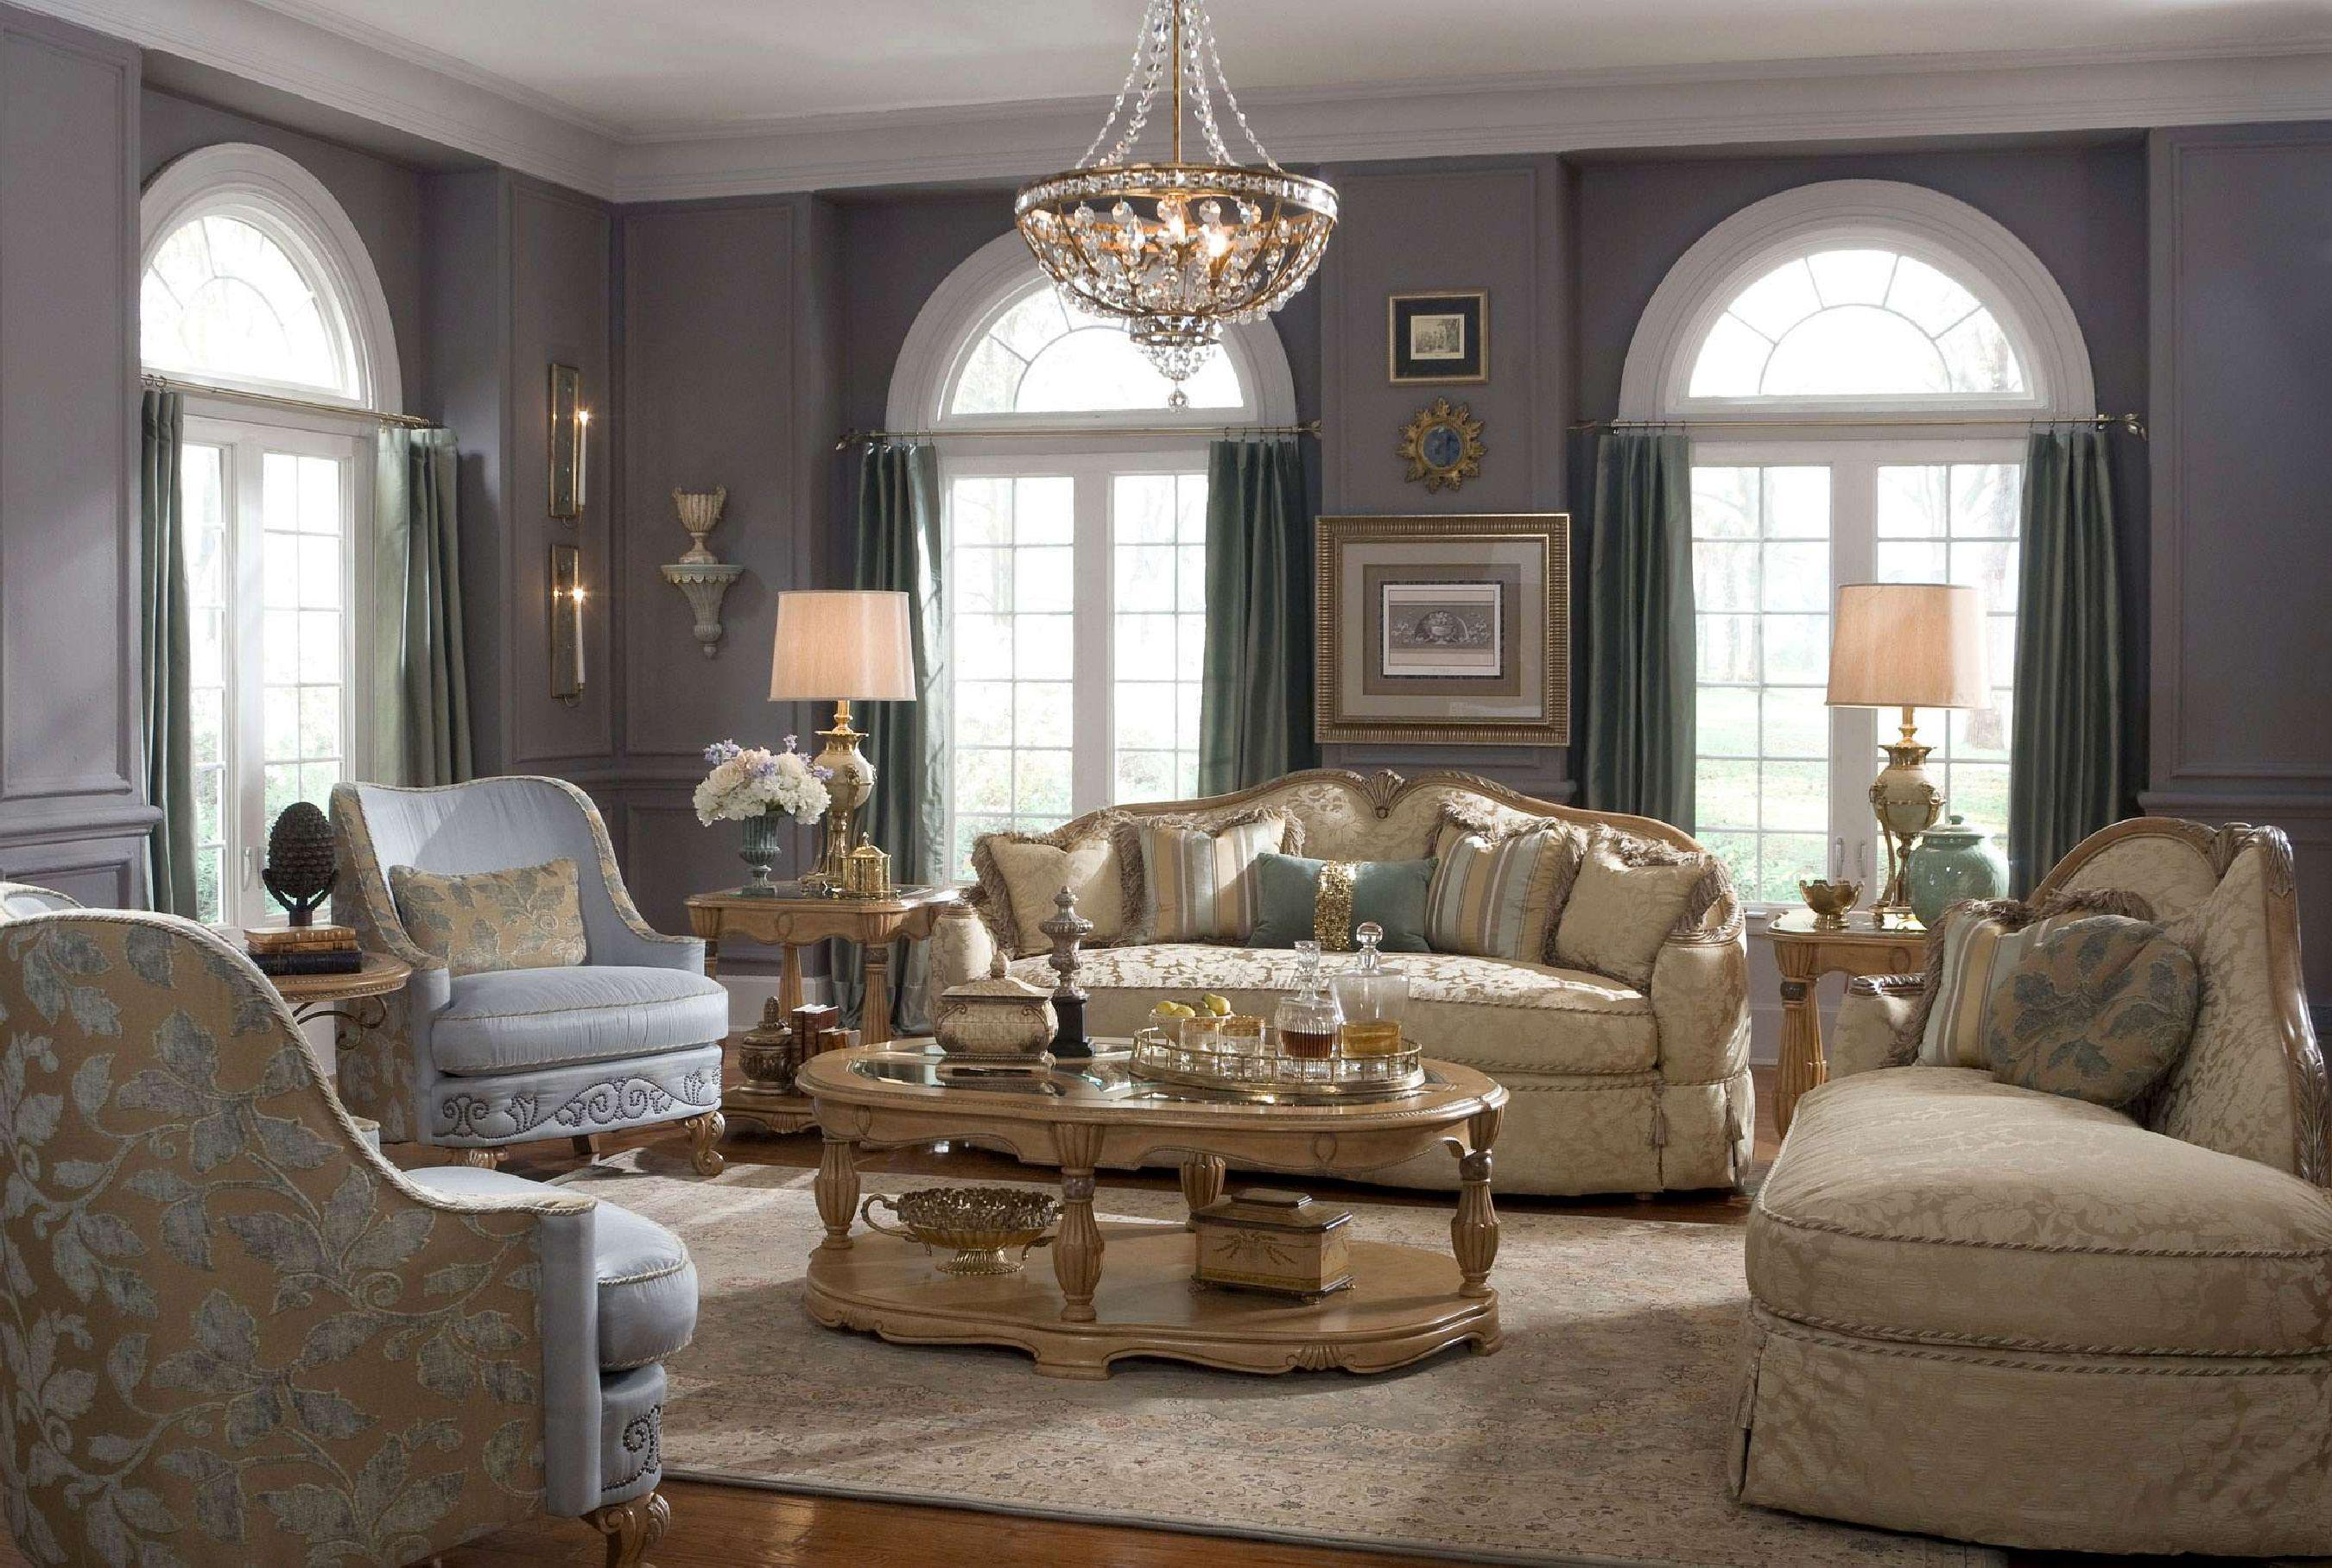 Decorating Your New Home 3 benefits of decorating your home with antiques - 3 benefits of